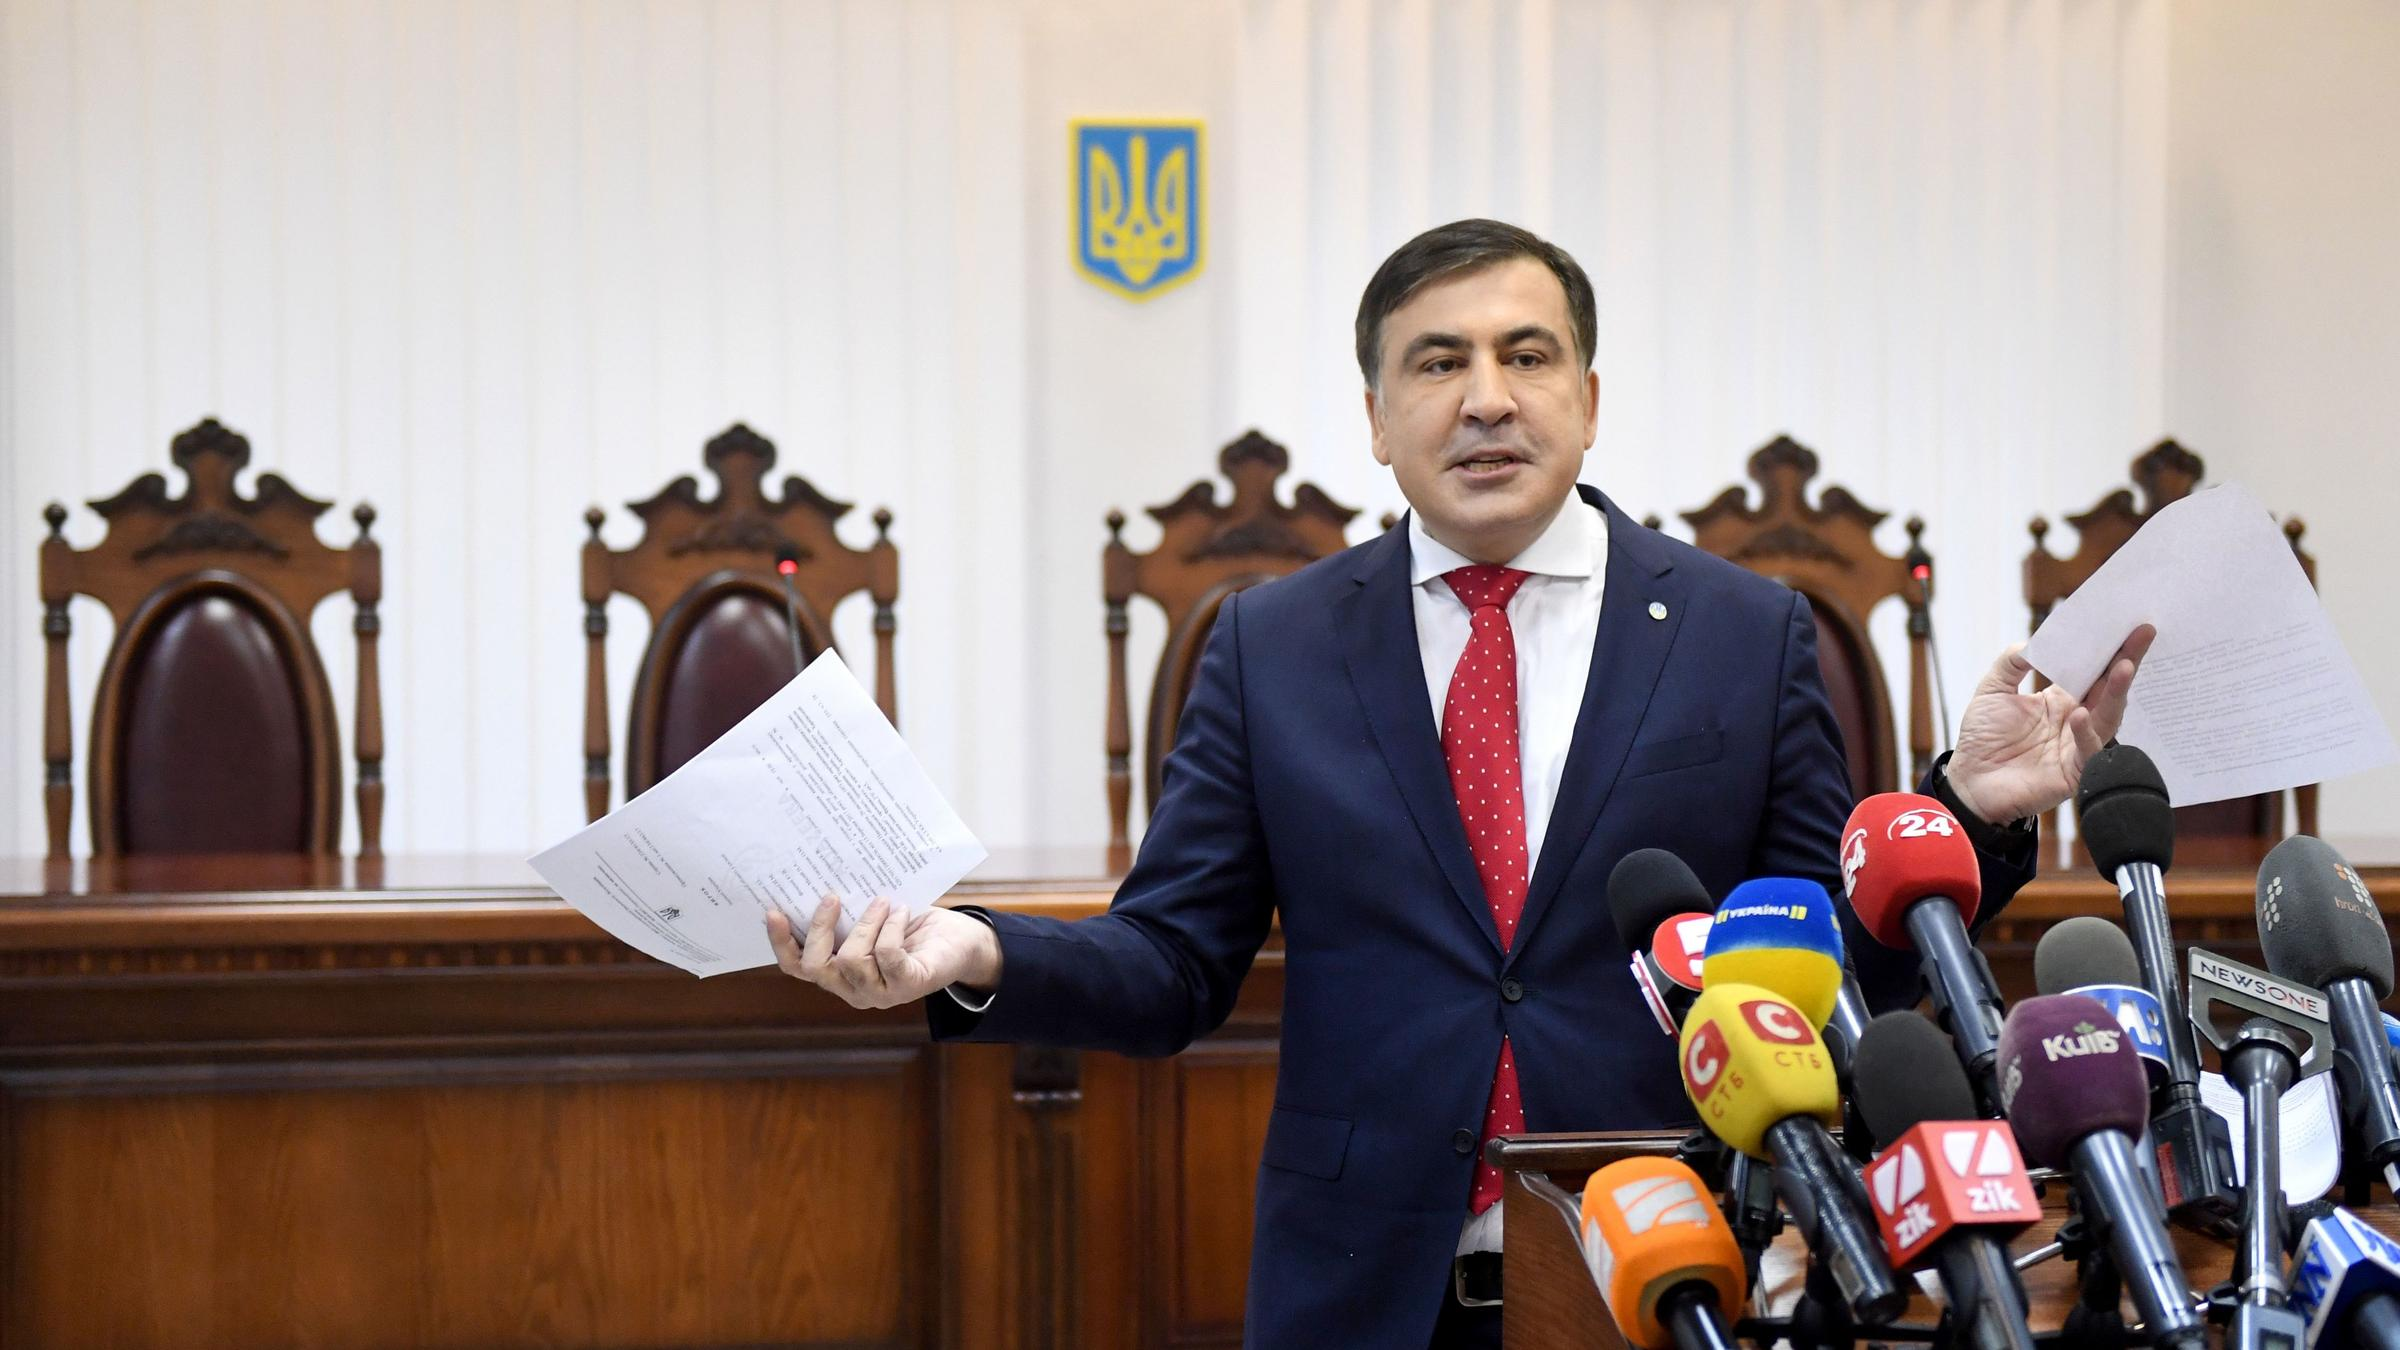 Media: In Ukraine, the former governor of the Zaporizhzhya region committed suicide on 12.03.2015 86